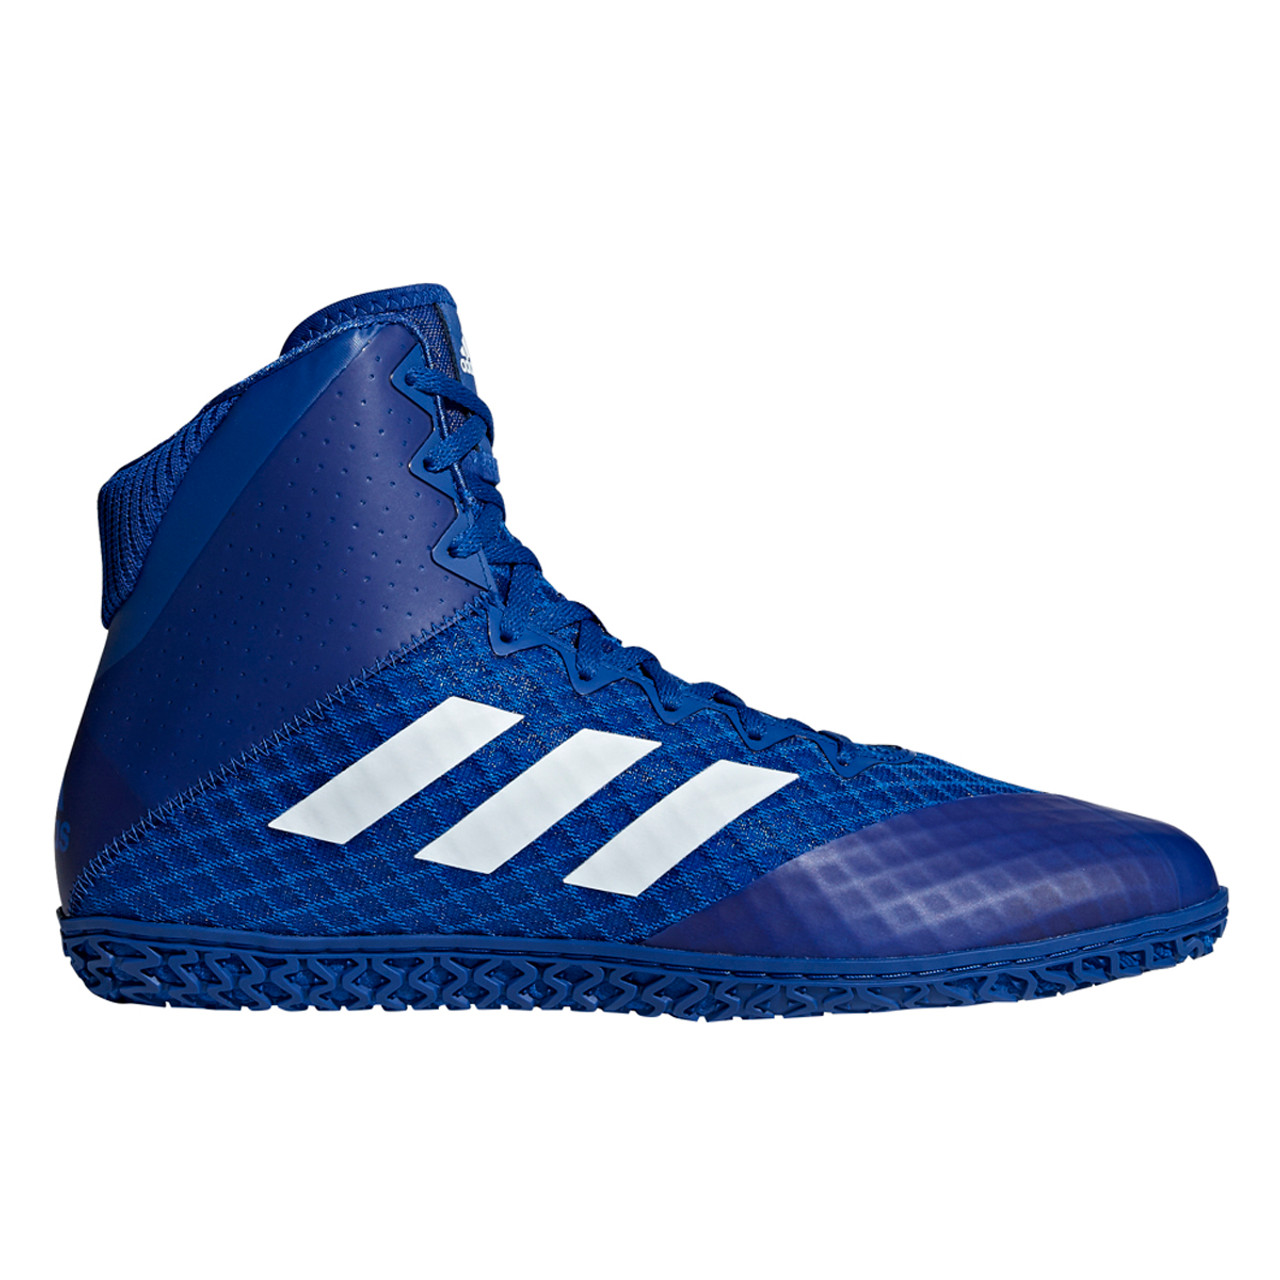 Adidas Mat Wizard 4 Adult Wrestling Shoes AC6973 - Royal, White